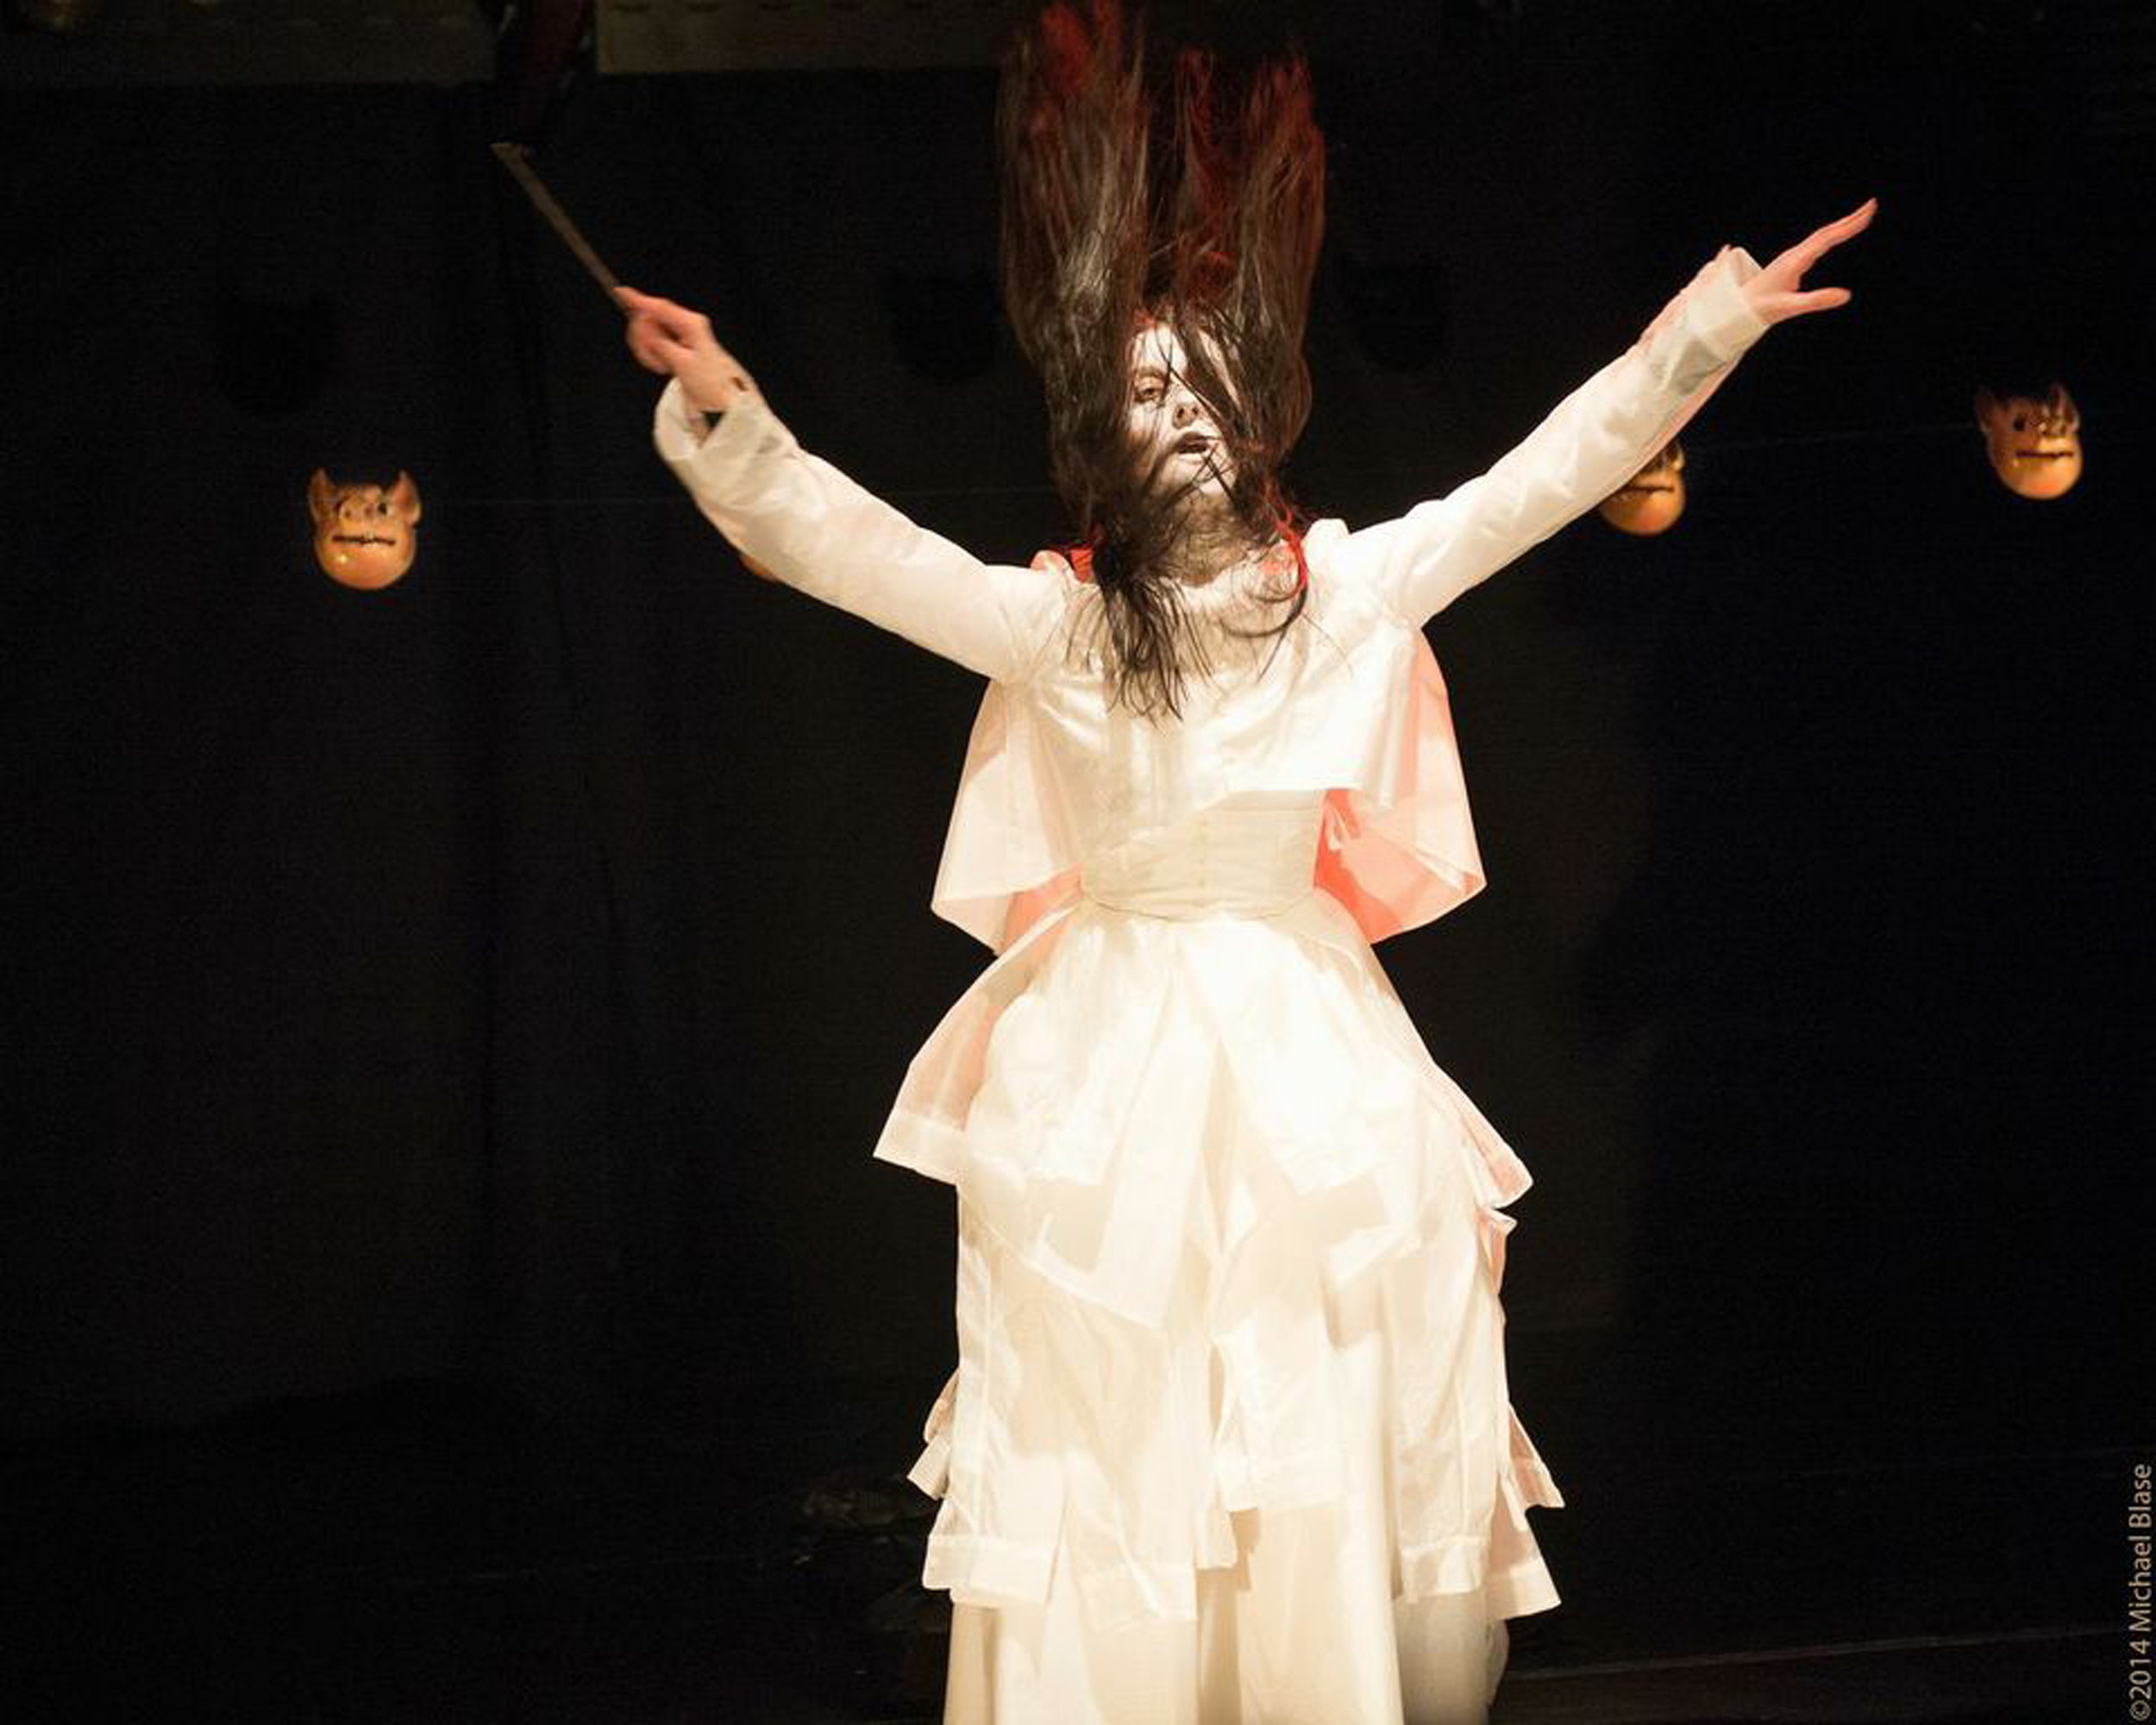 Vangeline in Fifth of Butoh- Butoh Beethoven at Triskelion Arts in 2014. Photo by Michael Blase.